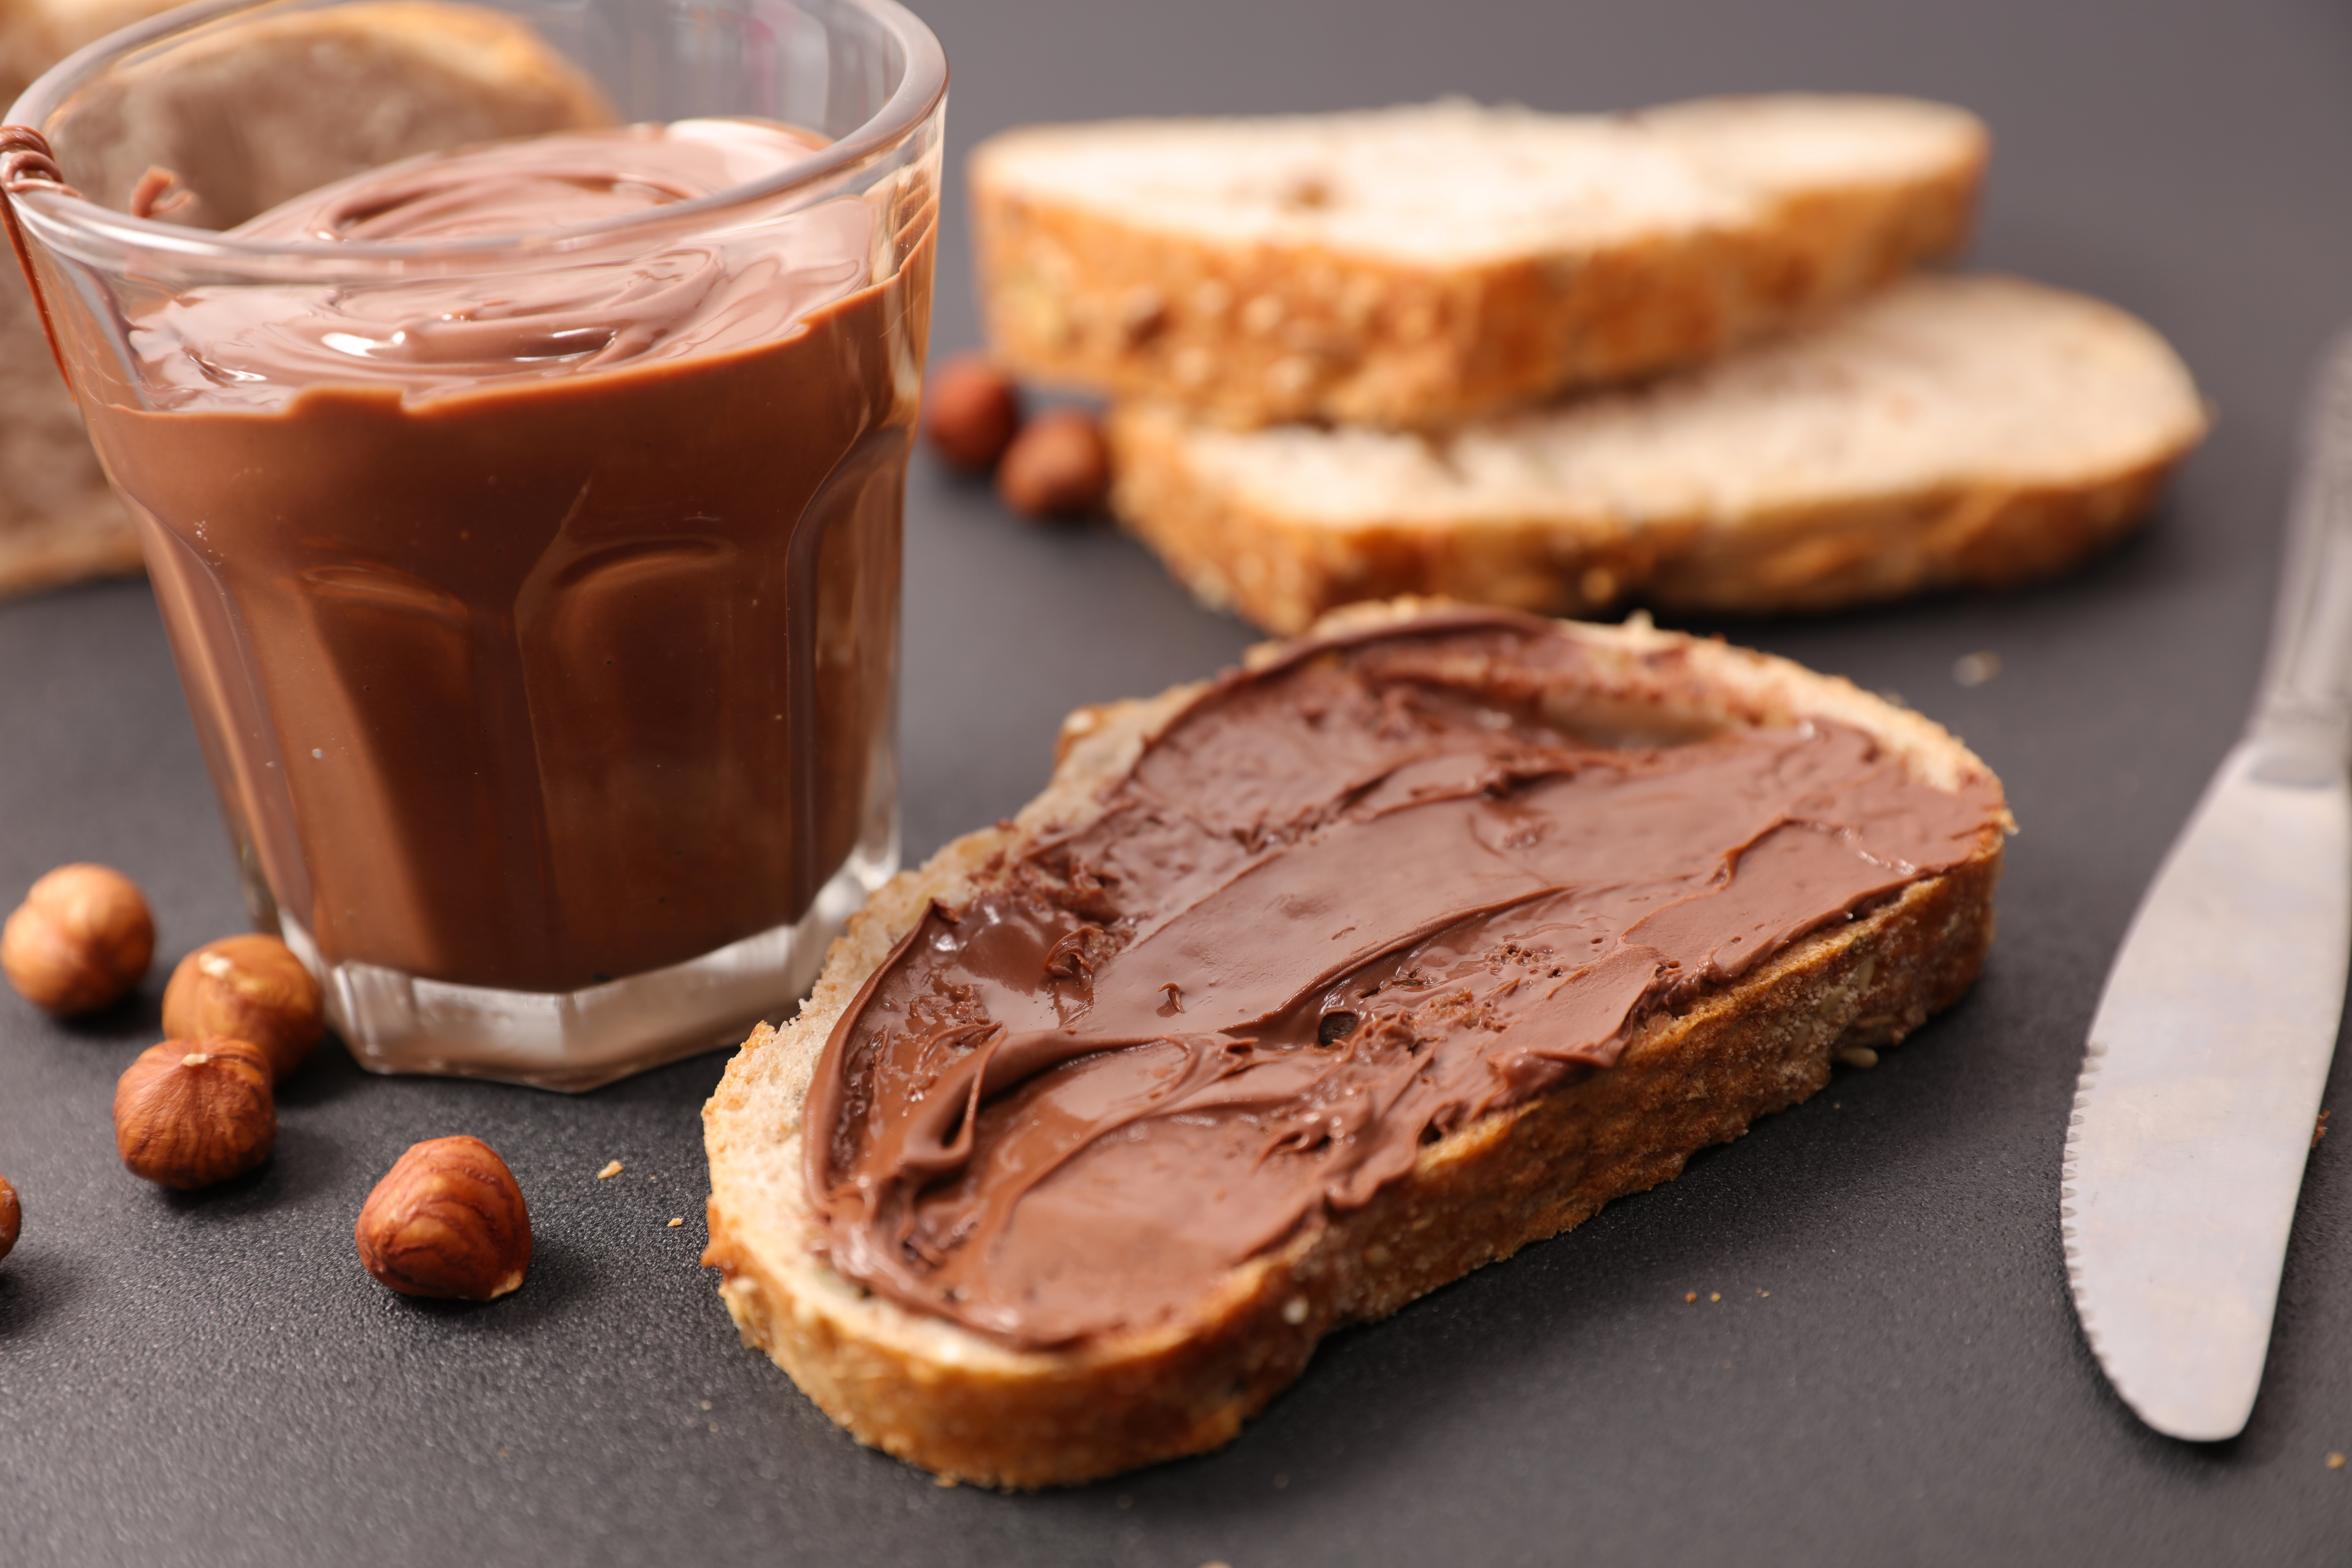 What Are the Health Benefits of Nutella Hazelnut Spread